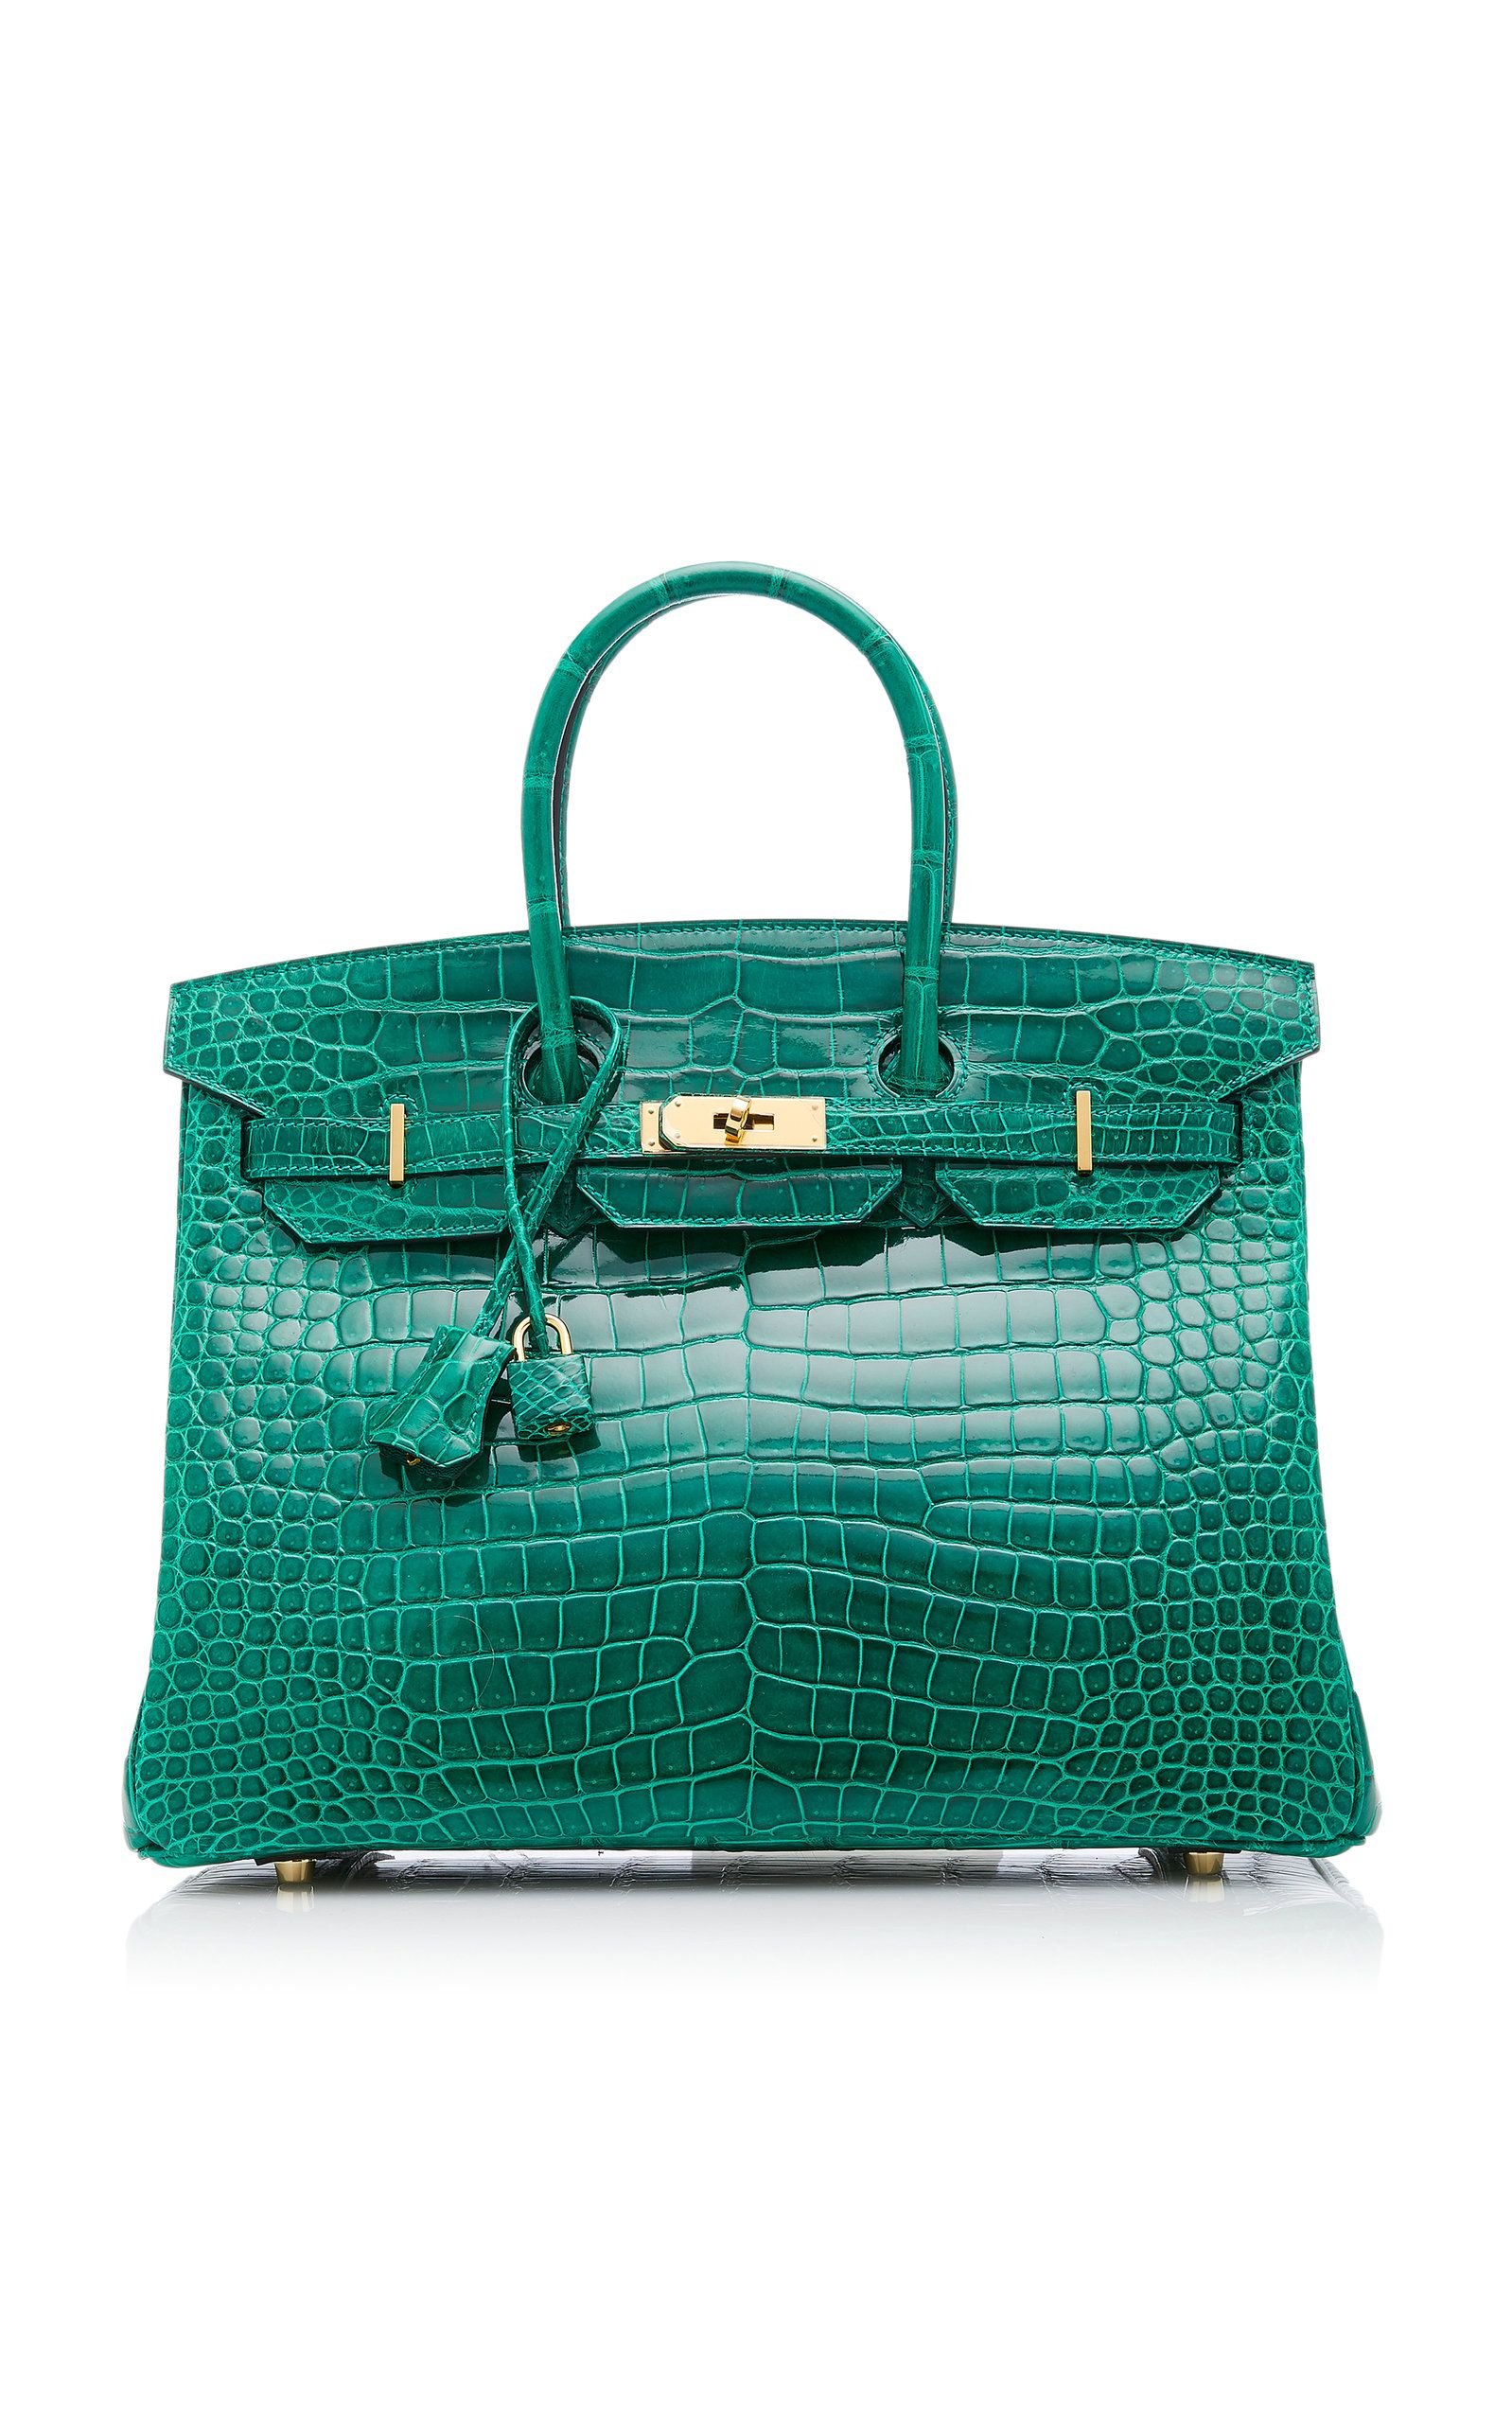 14a05071777d Hermès 35cm Vert Emerald Crocodile Birkin by HERMÈS VINTAGE BY HERITAGE  AUCTIONS for Preorder on Moda Operandi